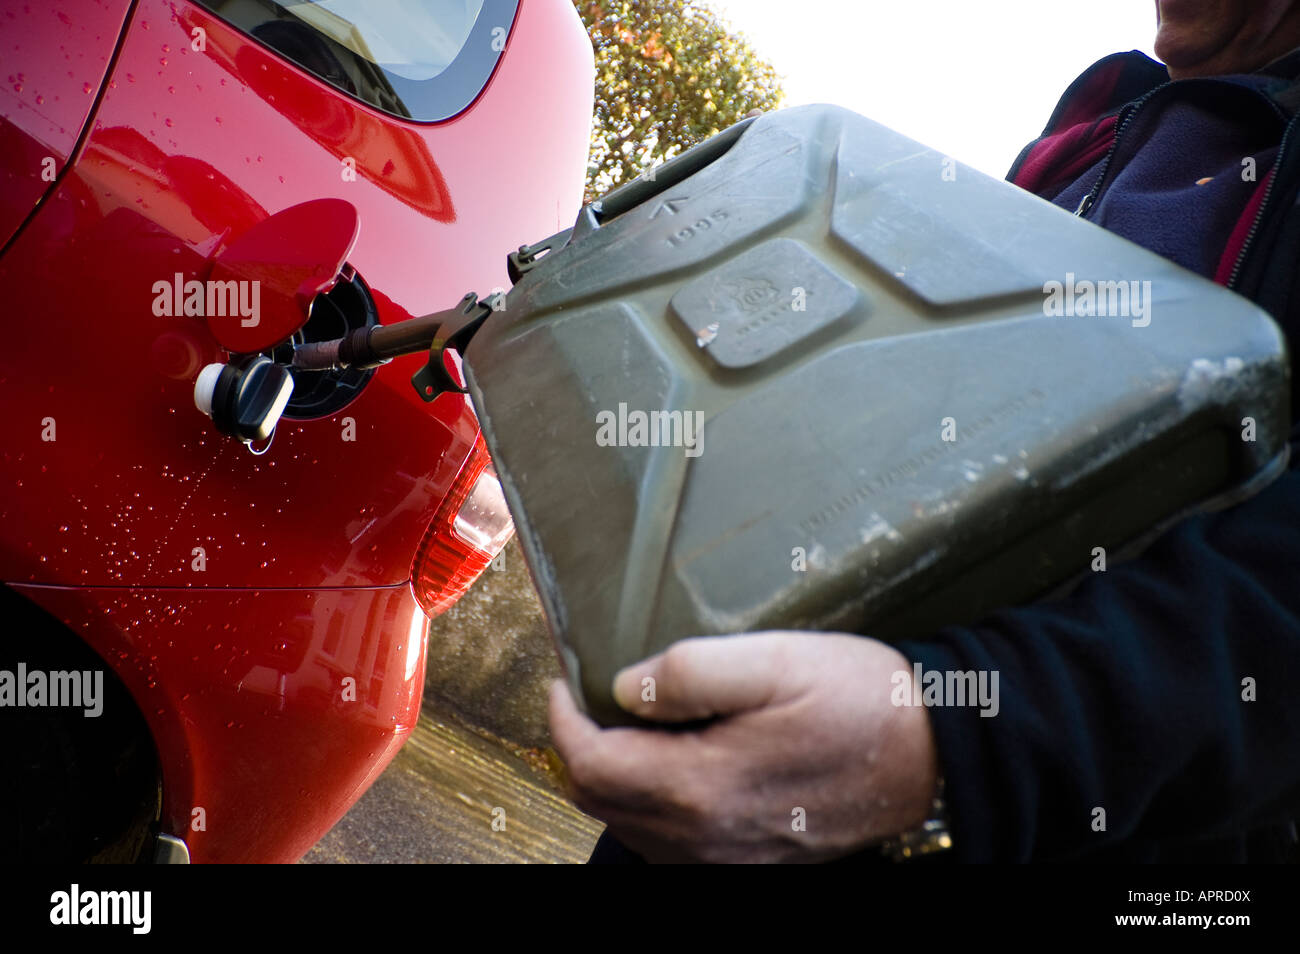 Filling A Car With A Jerry Can